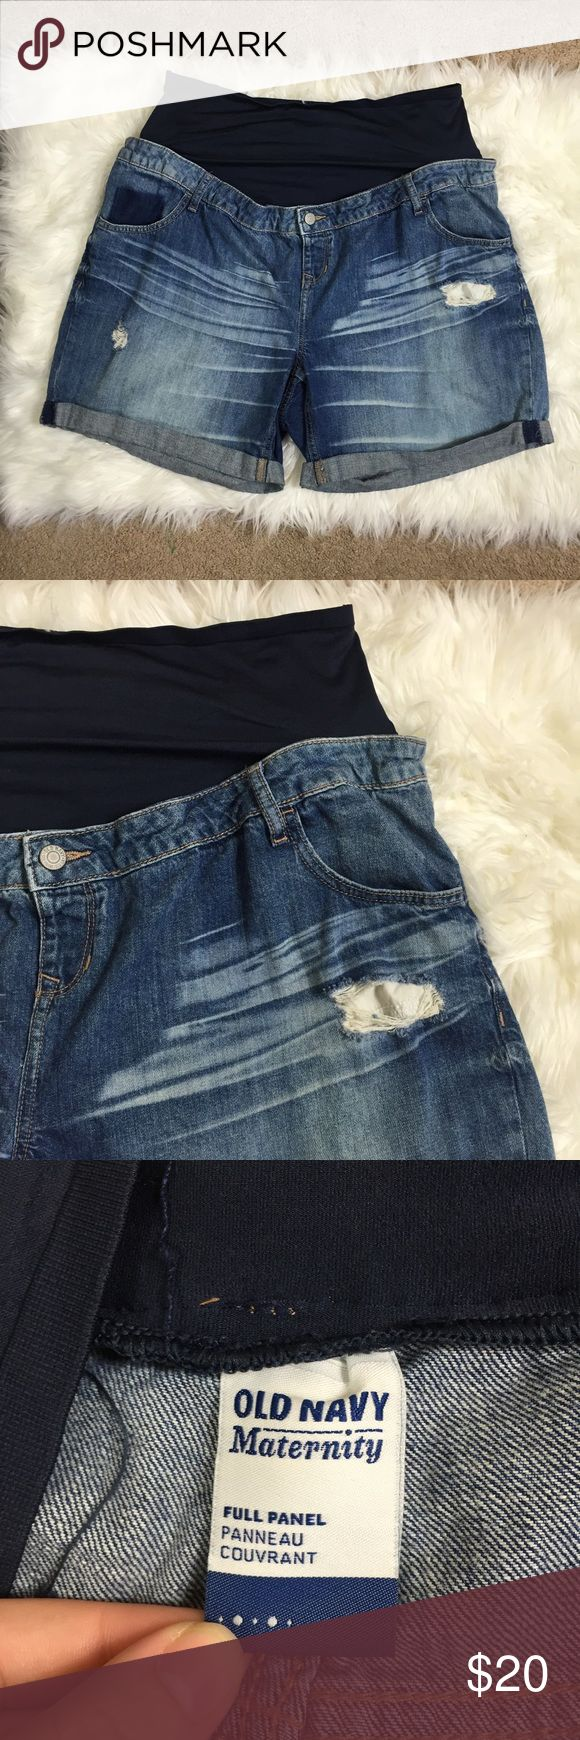 Maternity Distressed Jean Shorts Old navy maternity Jean shorts slightly distressed. Women's size 18. EUC Old Navy Shorts Jean Shorts